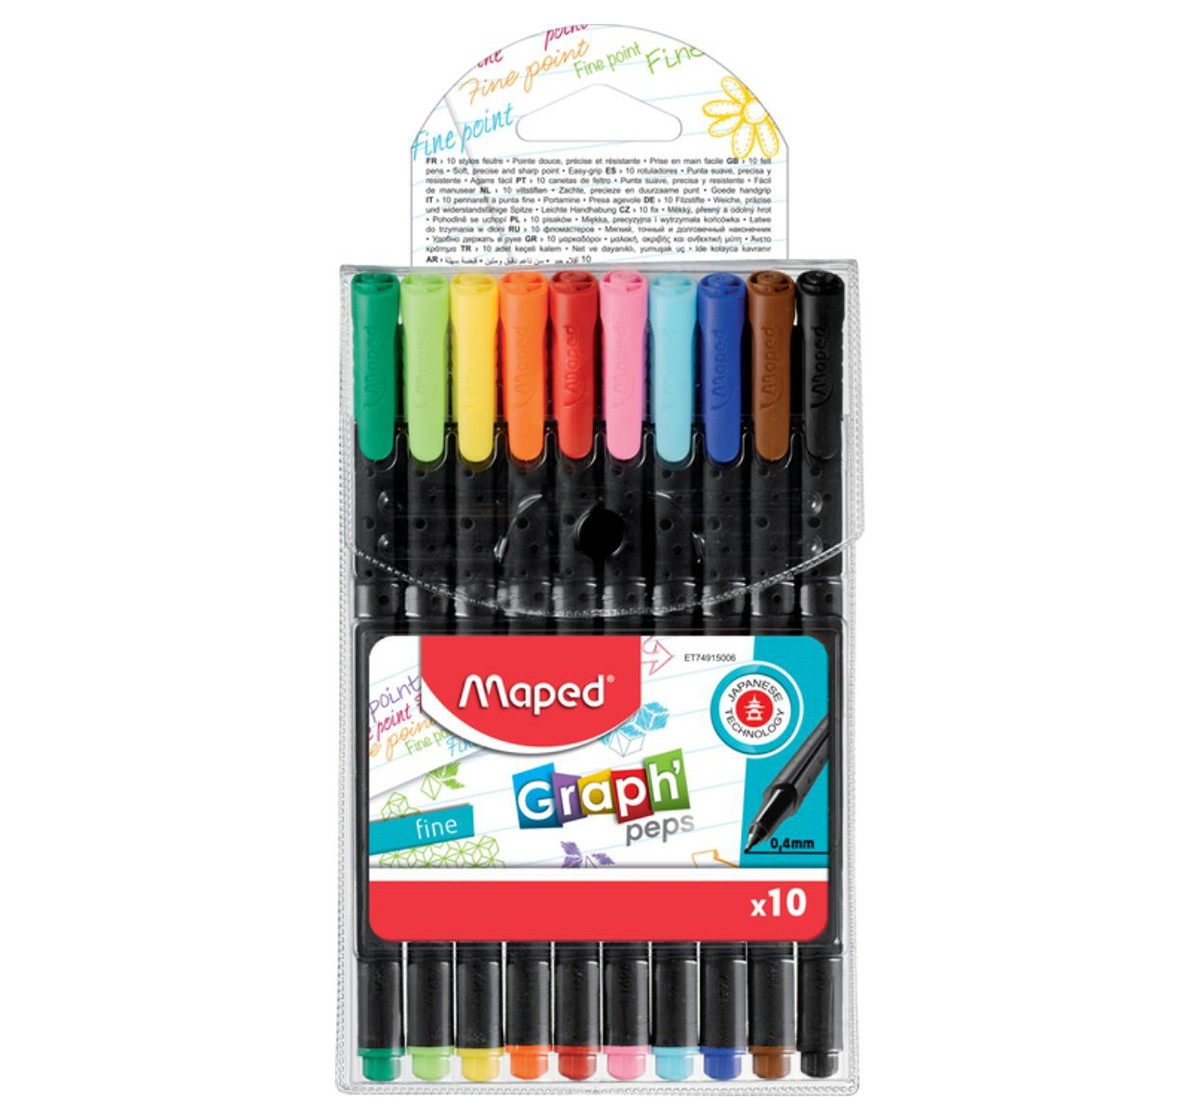 Maped 10 Graphpeps Fineliners Assorted, Unisex 7Y+ (Multicolour)